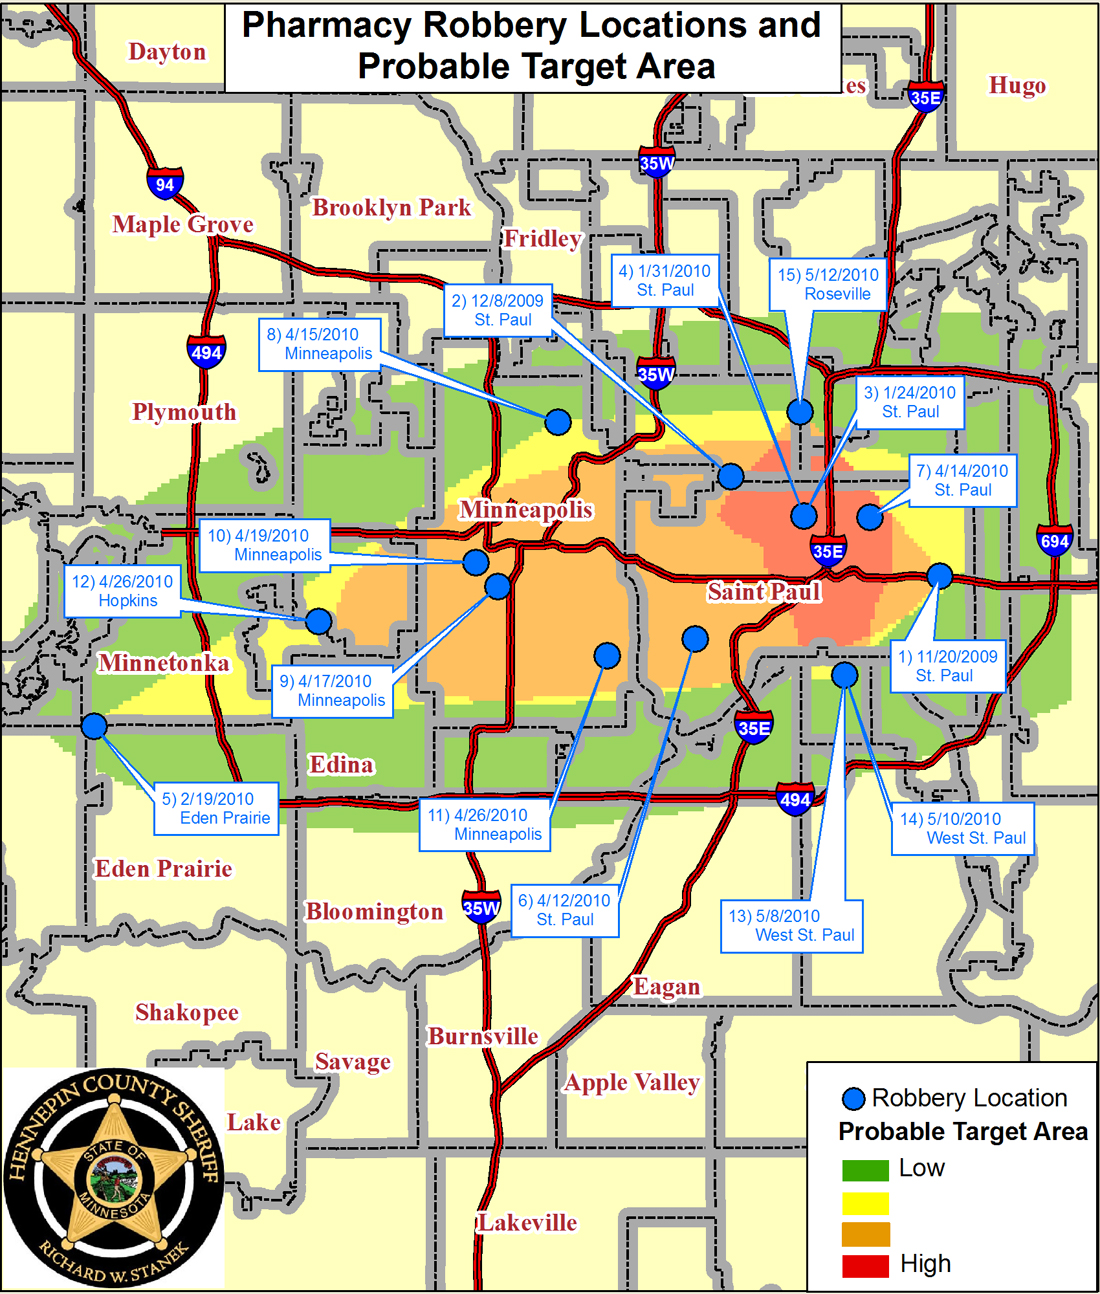 GIS/LIS NEWS - Winter 2011 - Issue 63 Hennepin Crime Maps ... on muncie crime map, eugene crime map, blaine crime map, los angeles county crime map, binghamton crime map, kentucky crime map, minnesota crime map, henderson crime map, nevada crime map, eau claire crime map, topeka crime map, burlington crime map, saint paul crime map, marysville crime map, fontana crime map, alabama crime map, edina crime map, utica crime map, yonkers crime map, poughkeepsie crime map,